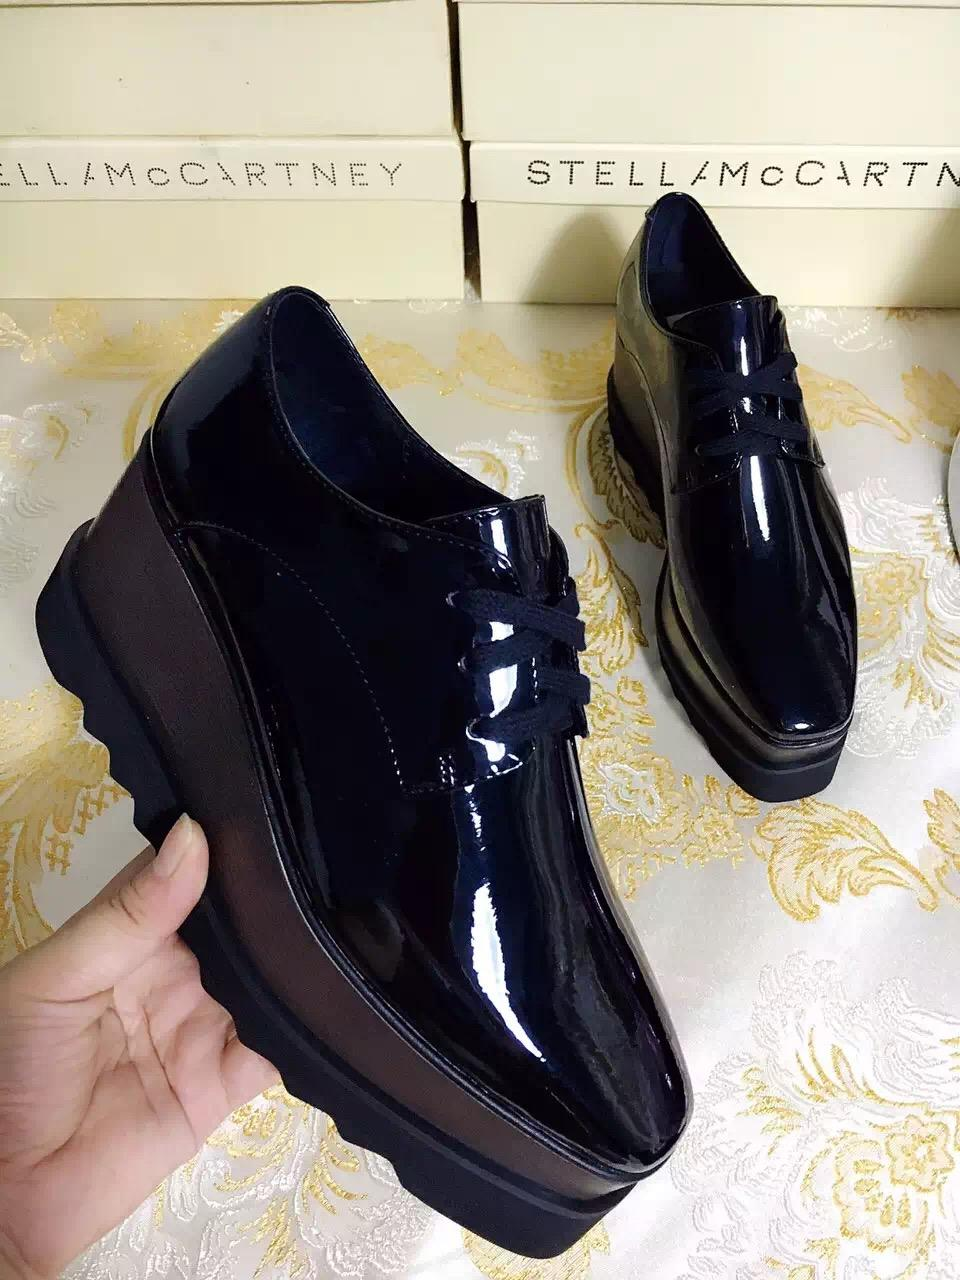 3ce97799dced6 MC Stella Mccartney Black Elyse Shoes Black Patent Leather With Black Sole  Low Top Mens Dress Shoes Platform Shoes From Luischen